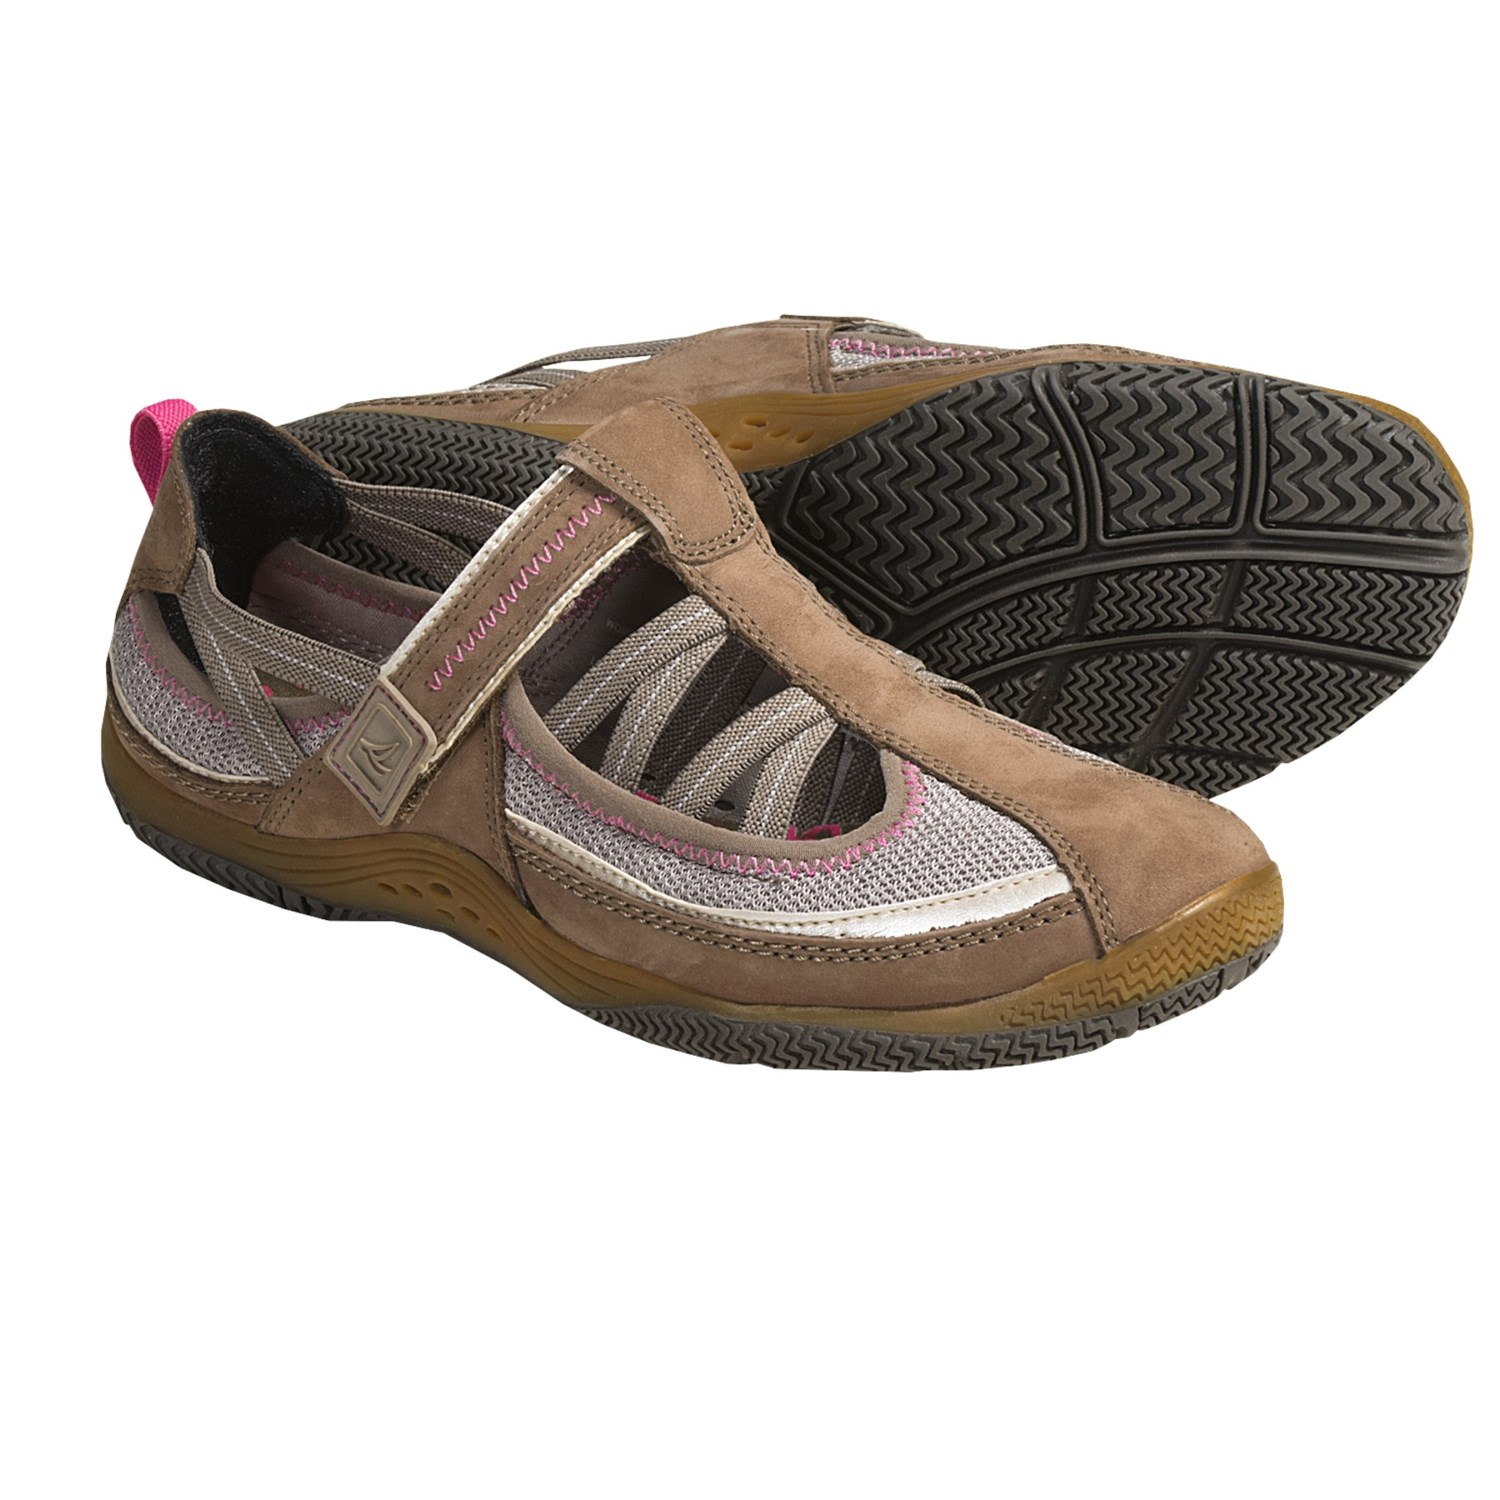 Shoes : Women's Footwear : Women's Shoes : Women's Water Shoes